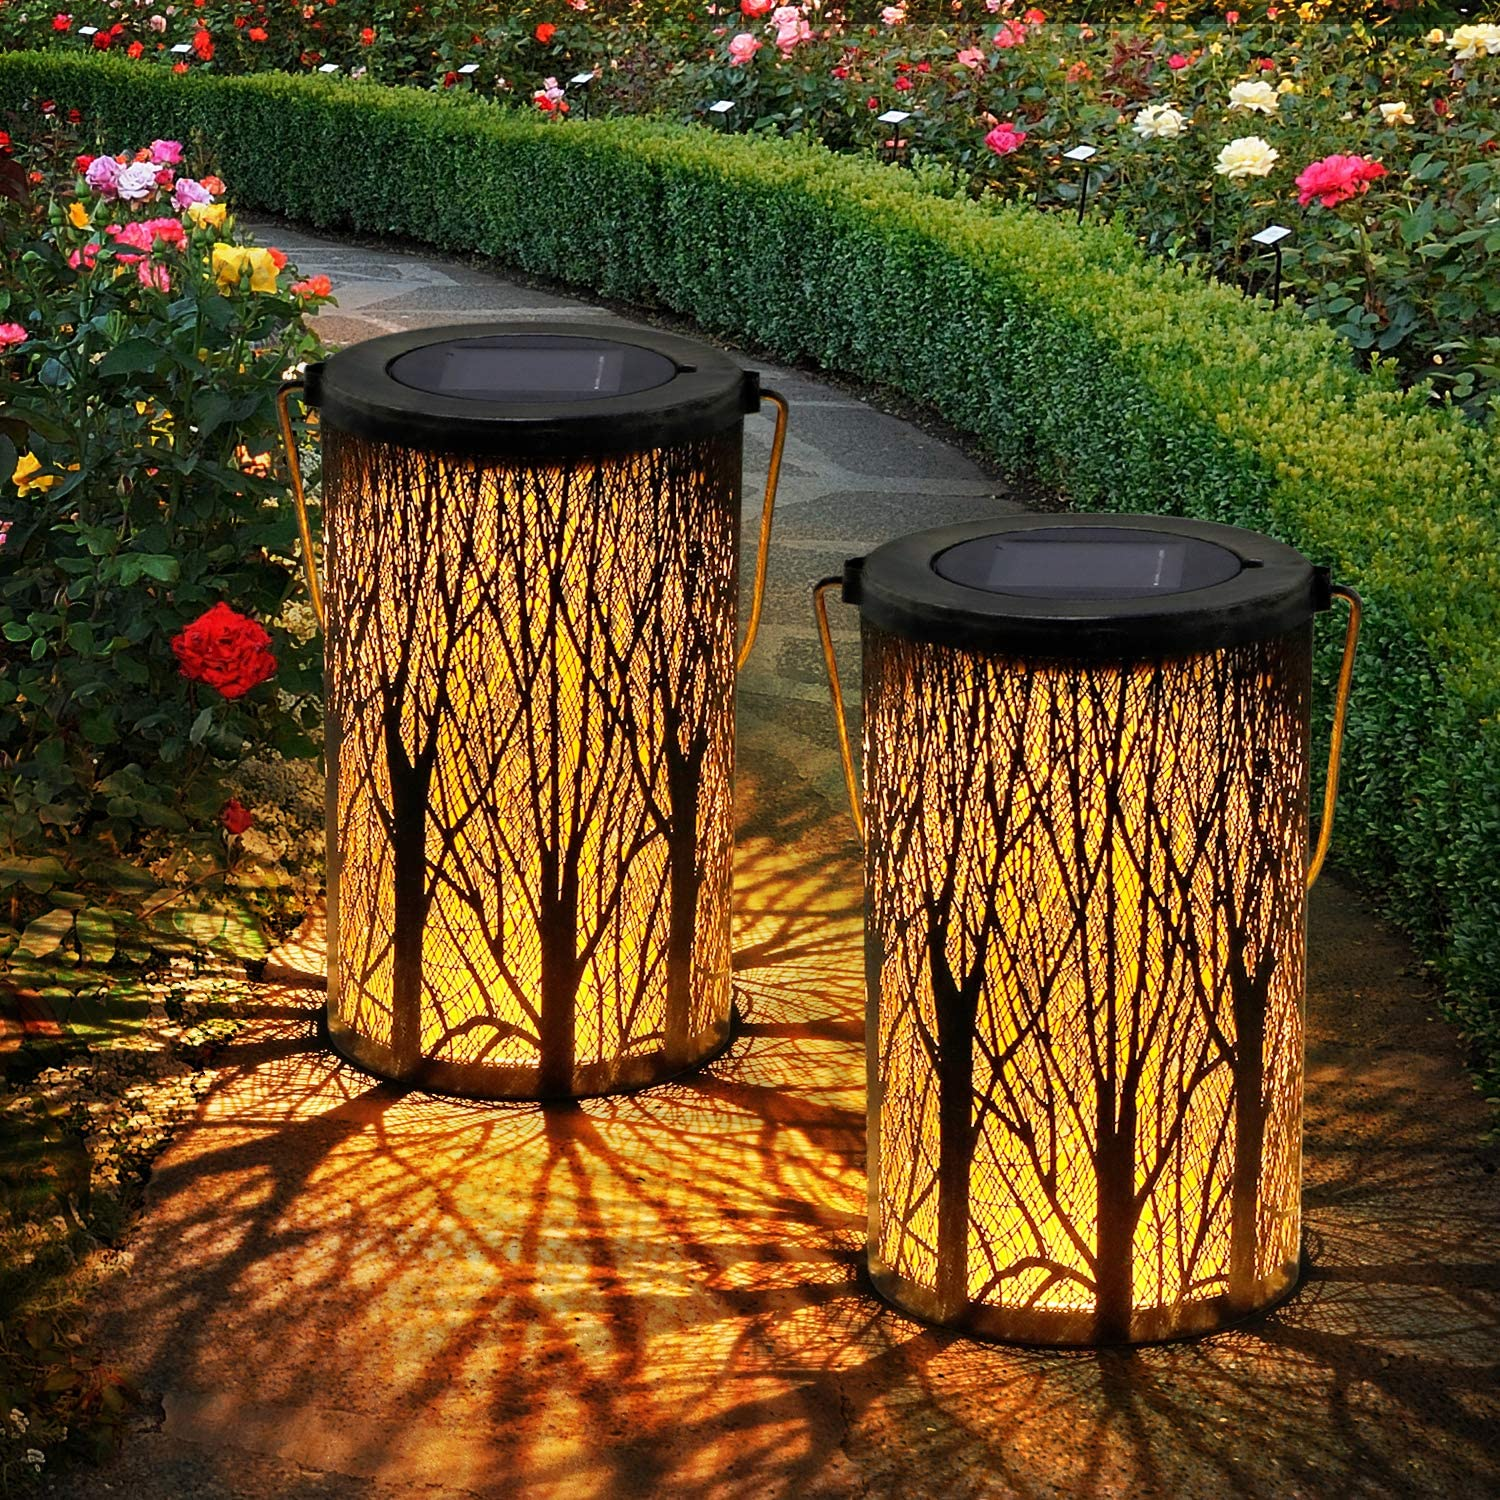 2 Pack Solar Lanterns, OxyLED LED Solar Garden Lights Outdoor, Hanging Lanterns Solar Powered with Handle Waterproof, Decorative Solar Lights for Table Patio Yard Pathway Walkway Driveway Christmas